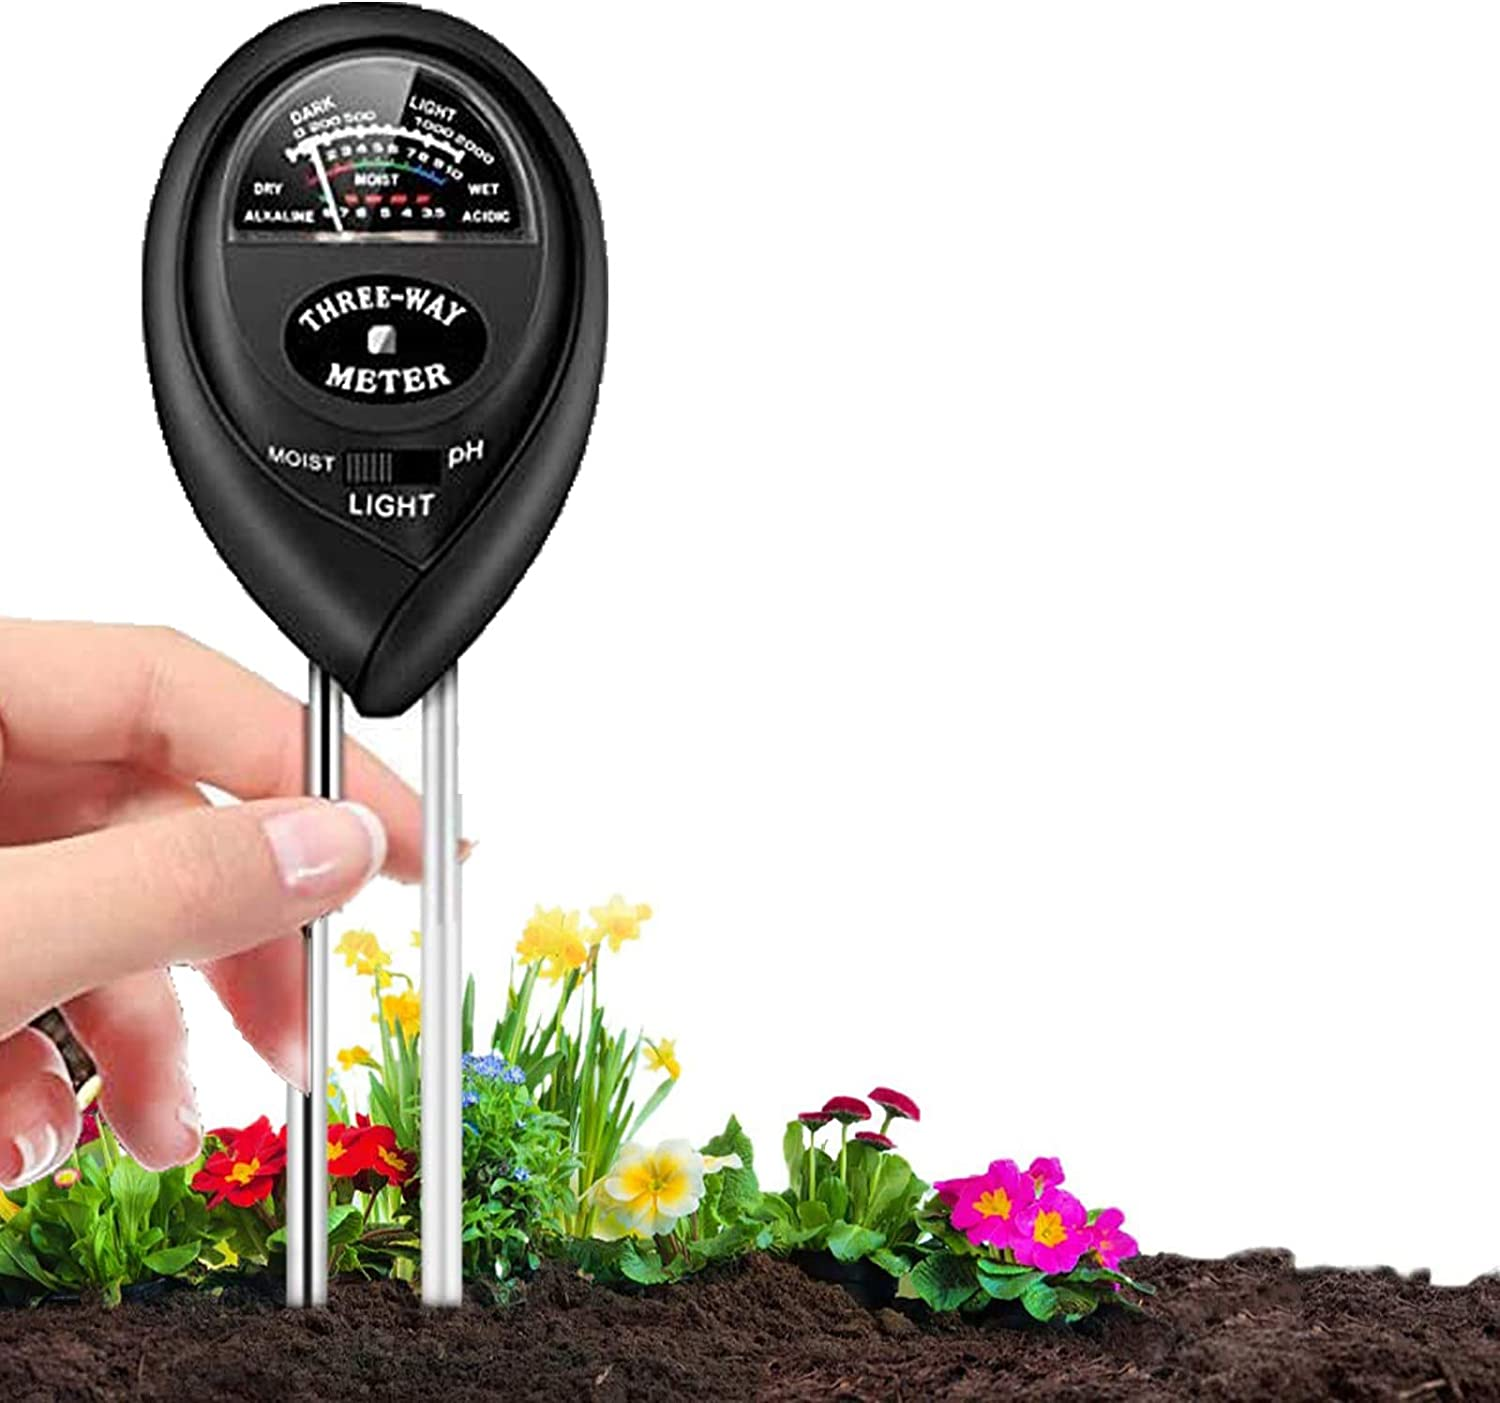 Soil pH Meter, 3-in-1 Soil Moisture/Light/pH Tester and Soil Test Kit for Garden, Lawn, Farm, Indoor & Outdoor, Soil Moisture Meter